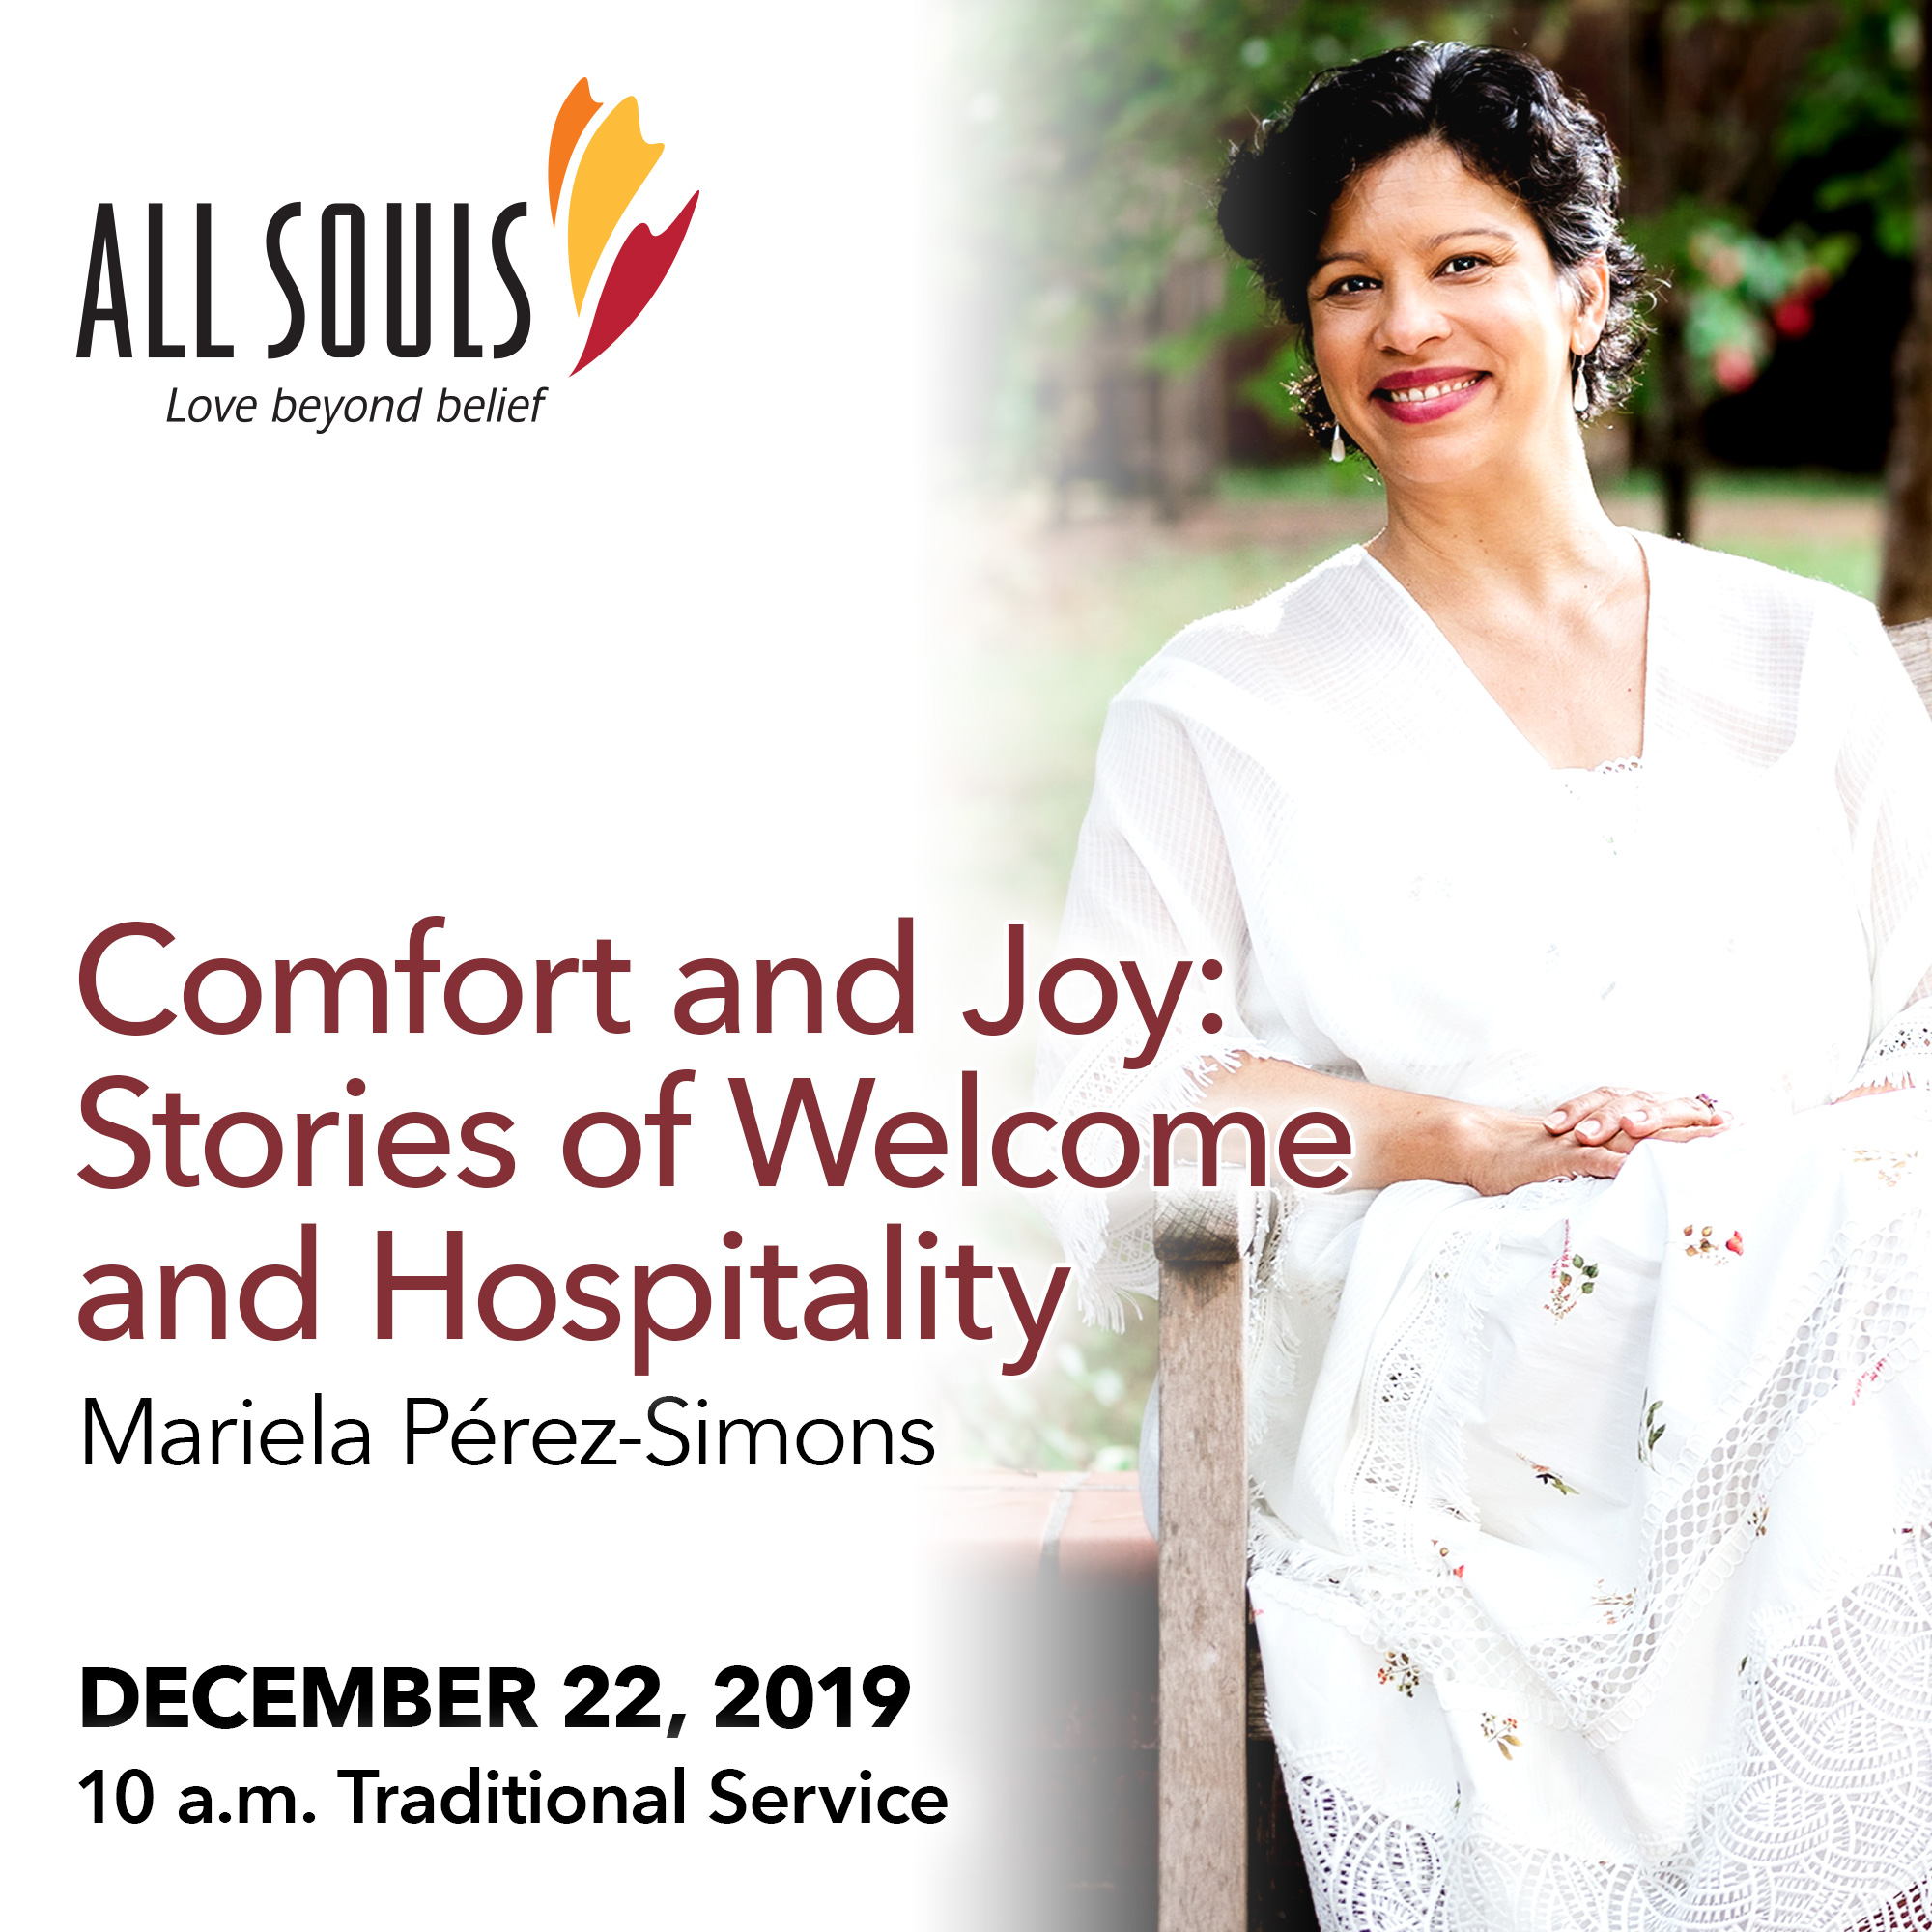 'COMFORT AND JOY: STORIES OF WELCOME AND HOSPITALITY' - A sermon by Mariela Pérez-Simons (Traditional Service) show art